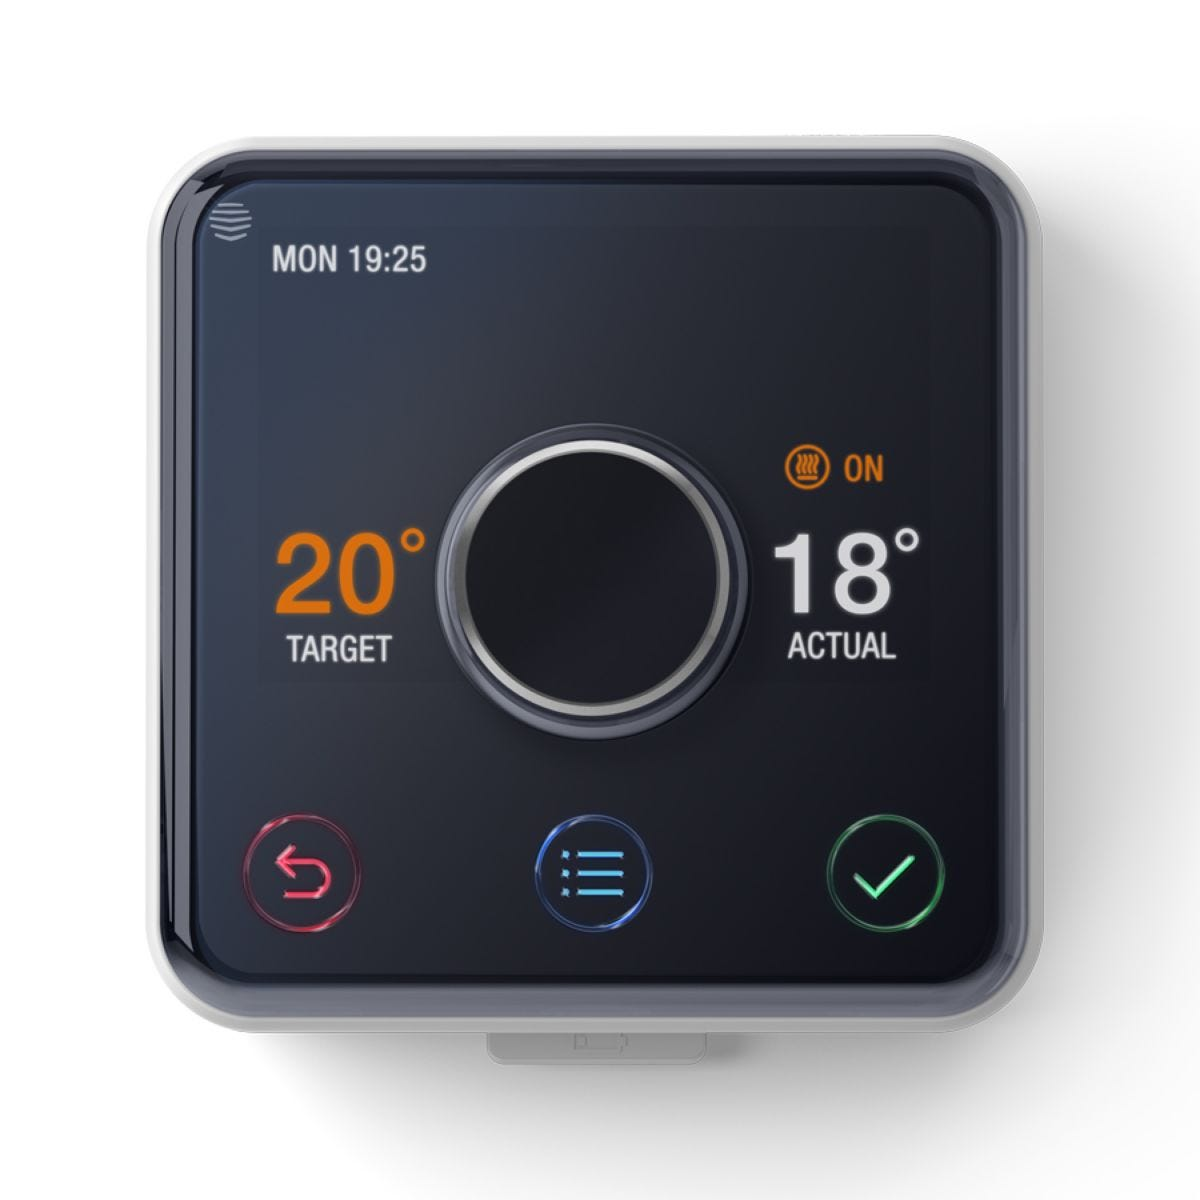 Hive Active Heating & Hot Water Thermostat with Professional Installation - Black